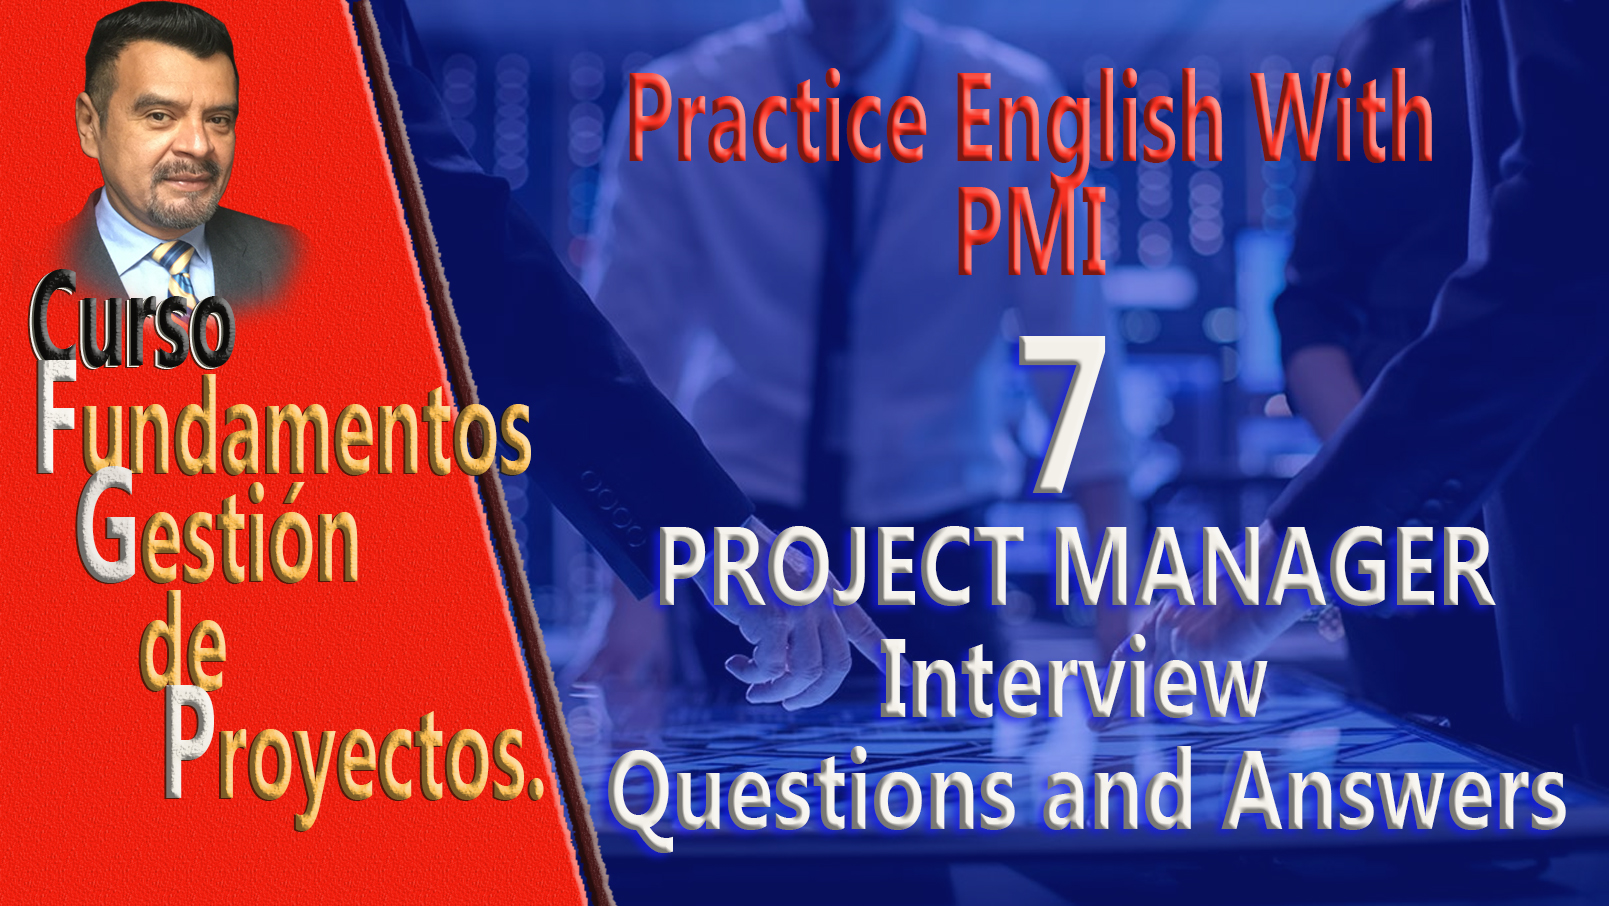 7 project manager interview questions and answers